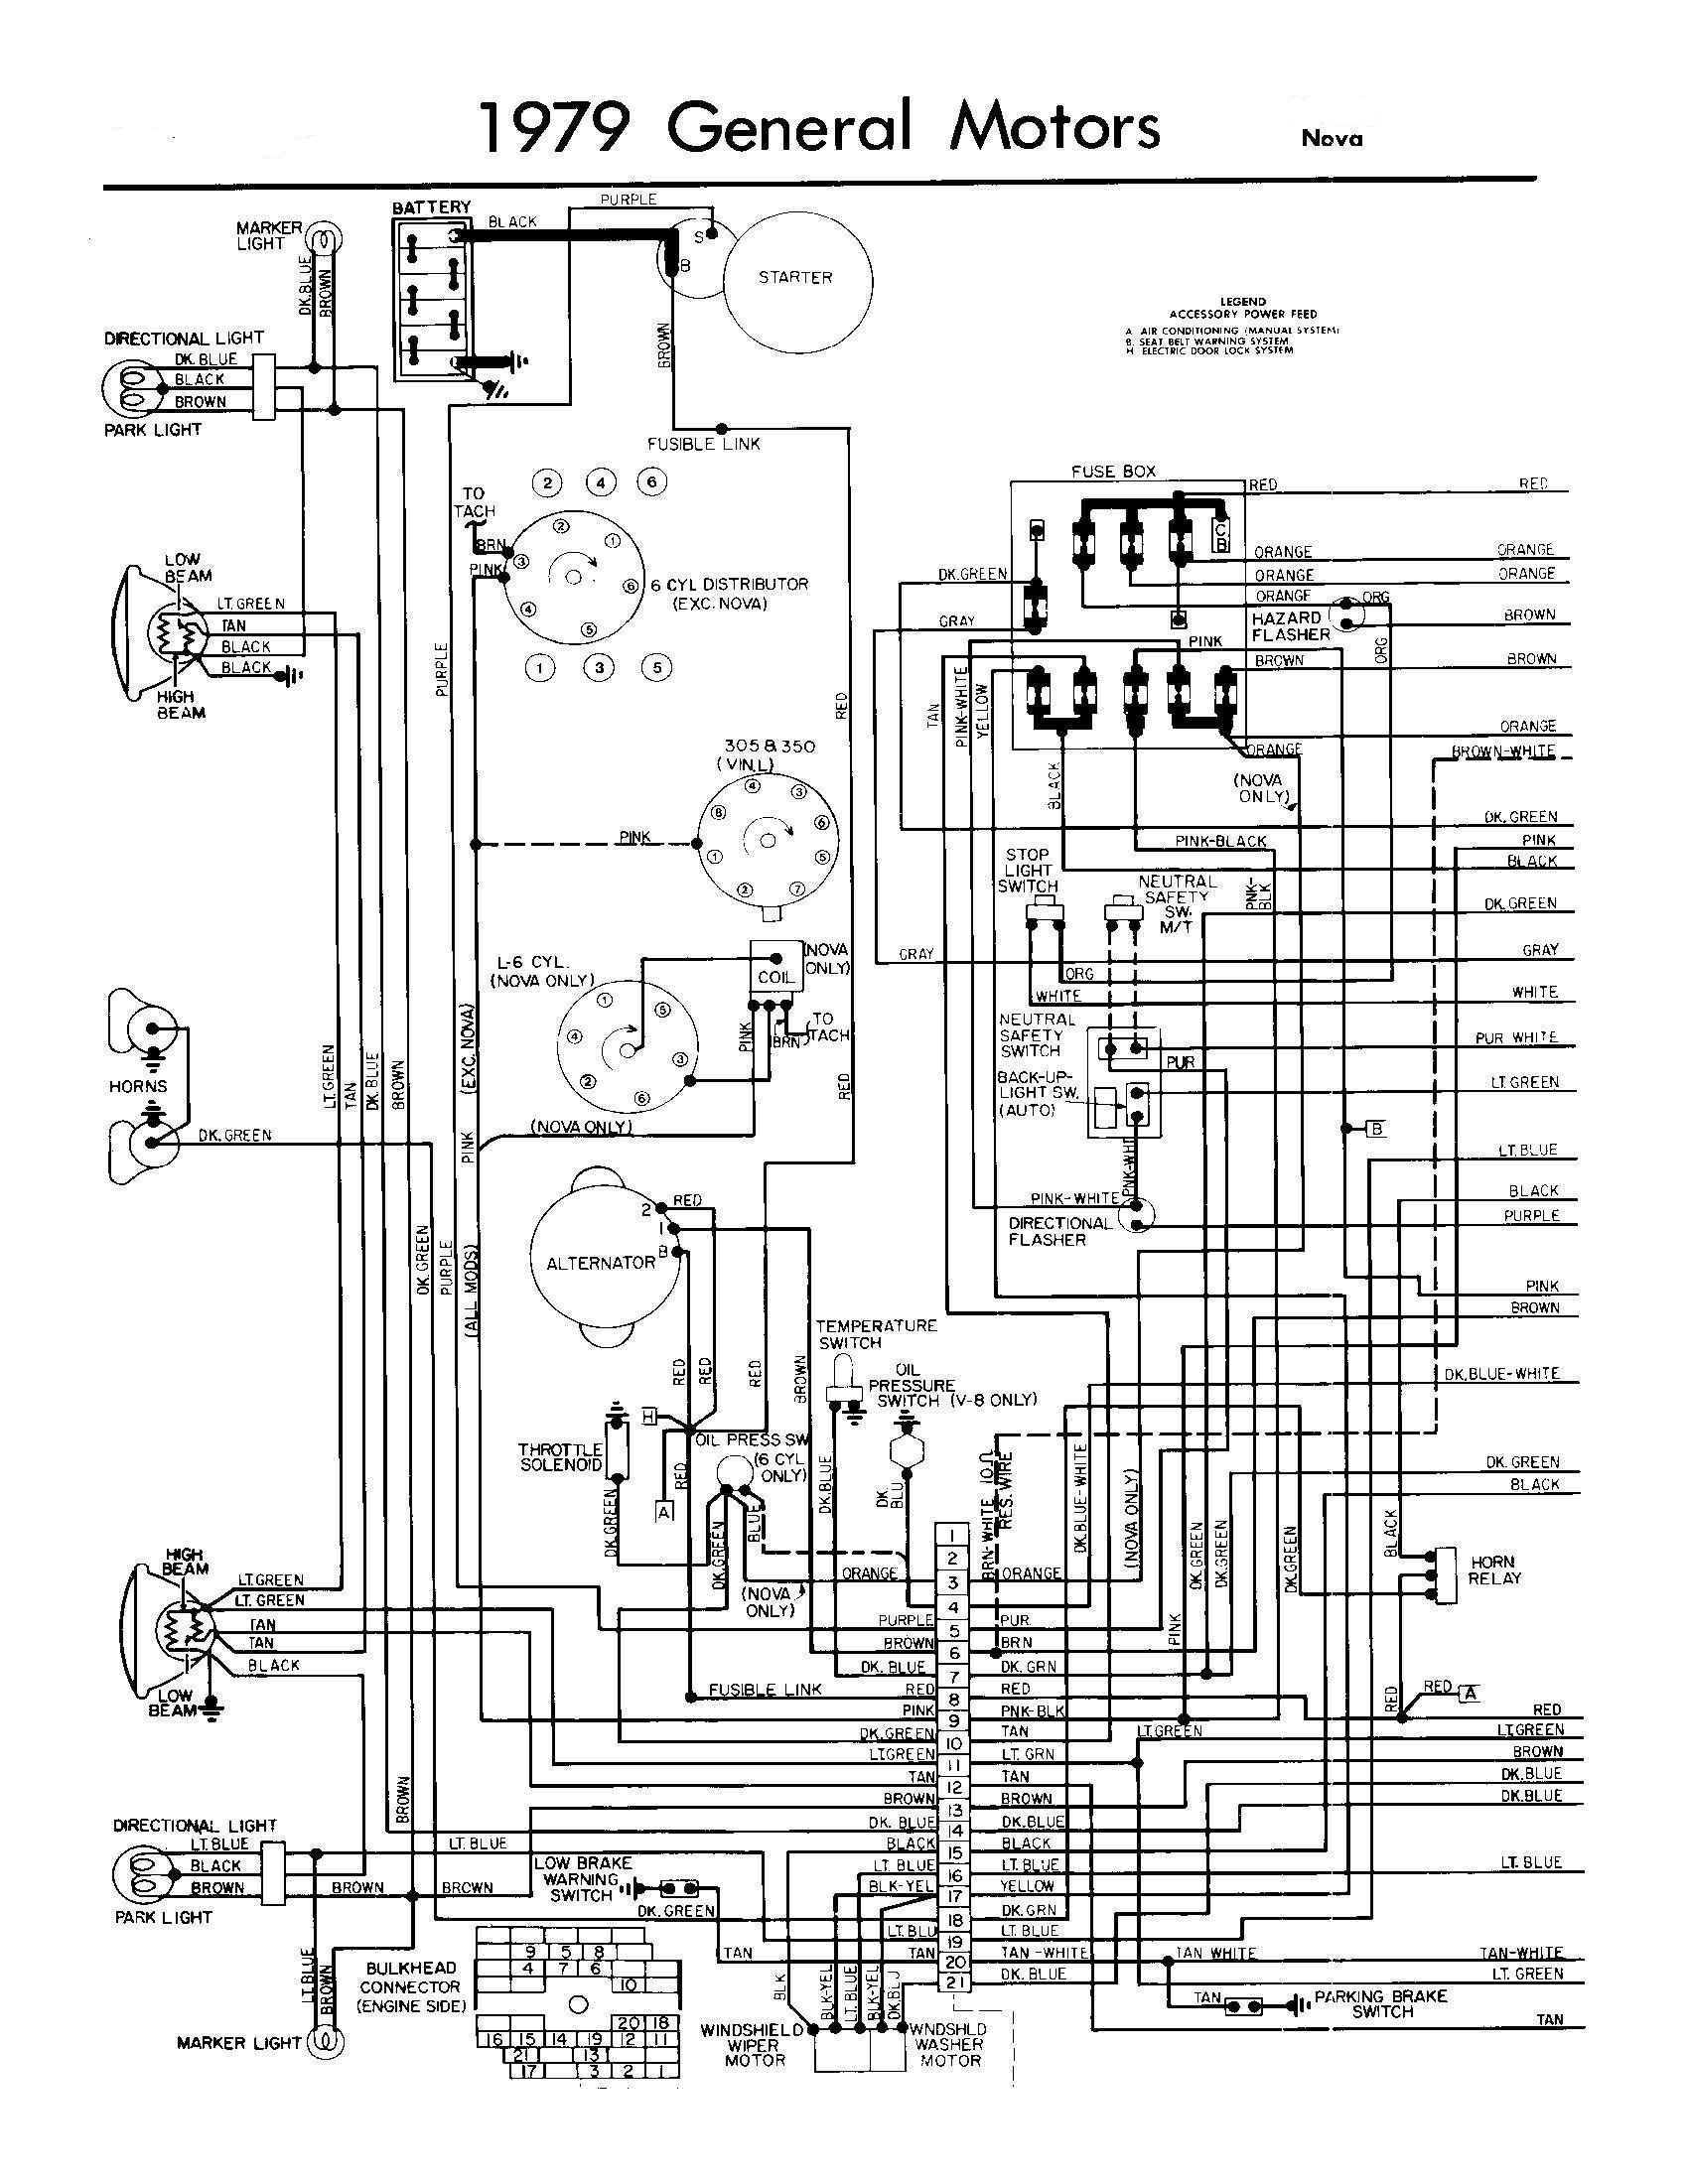 Daytona Cdi Wiring Diagram - Wiring Schematics on